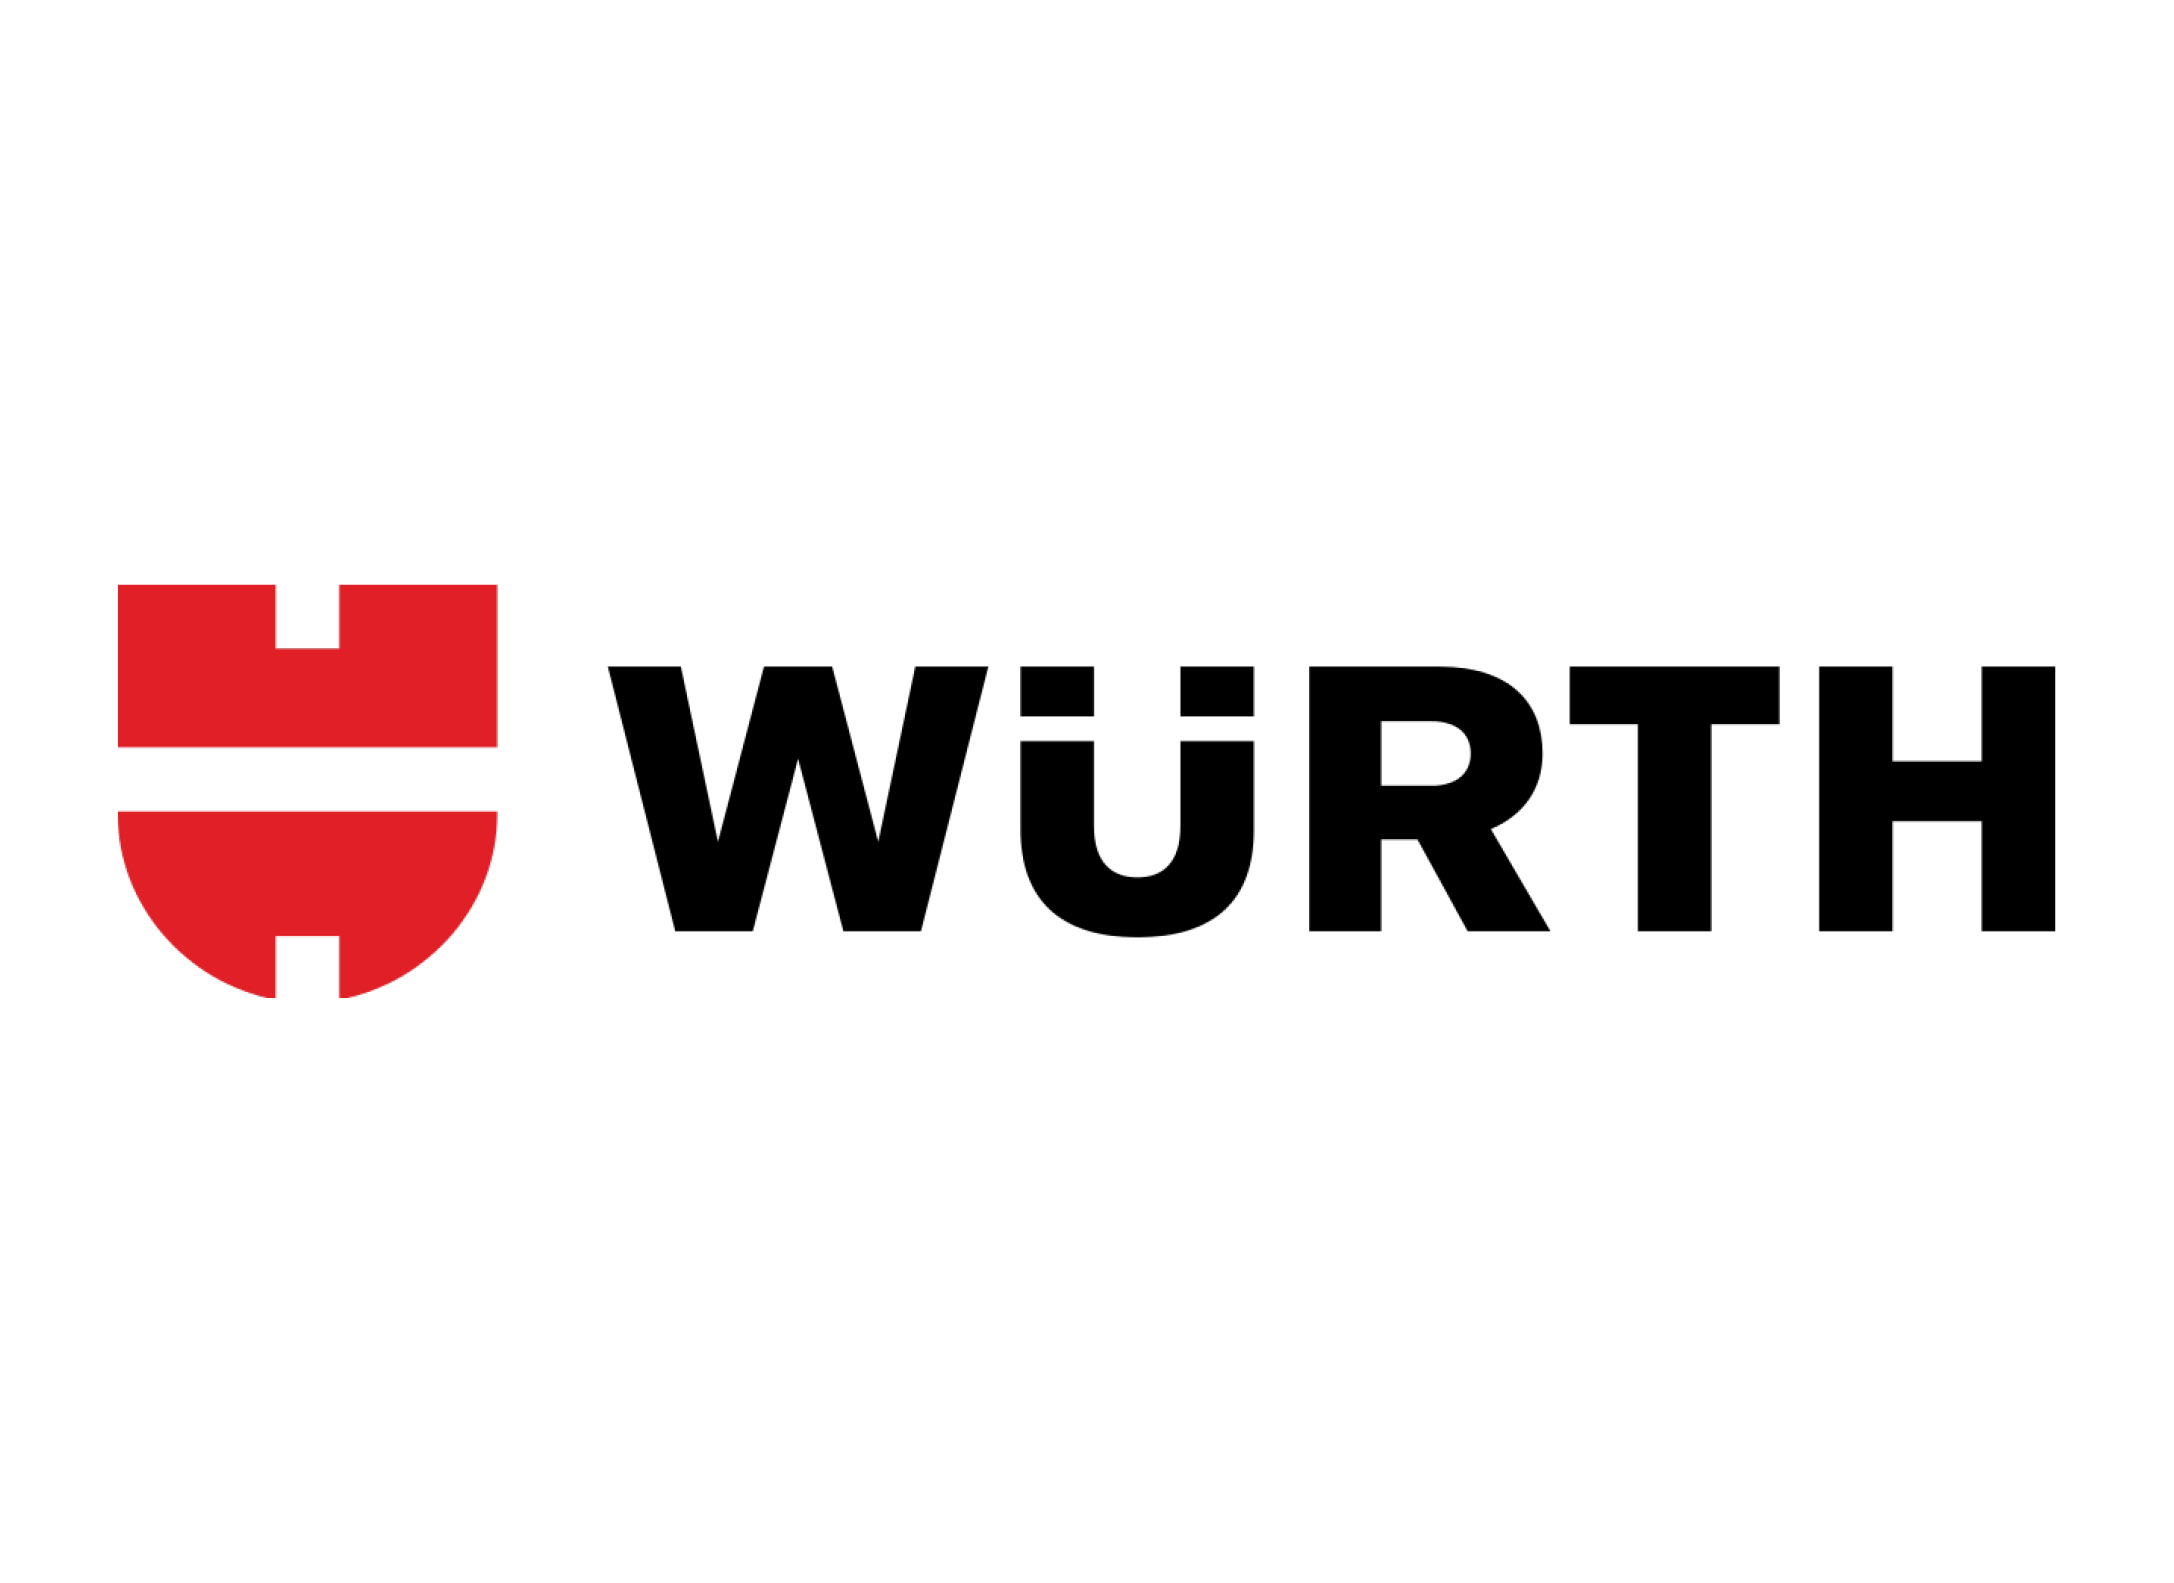 Wuerth LOGO web and print